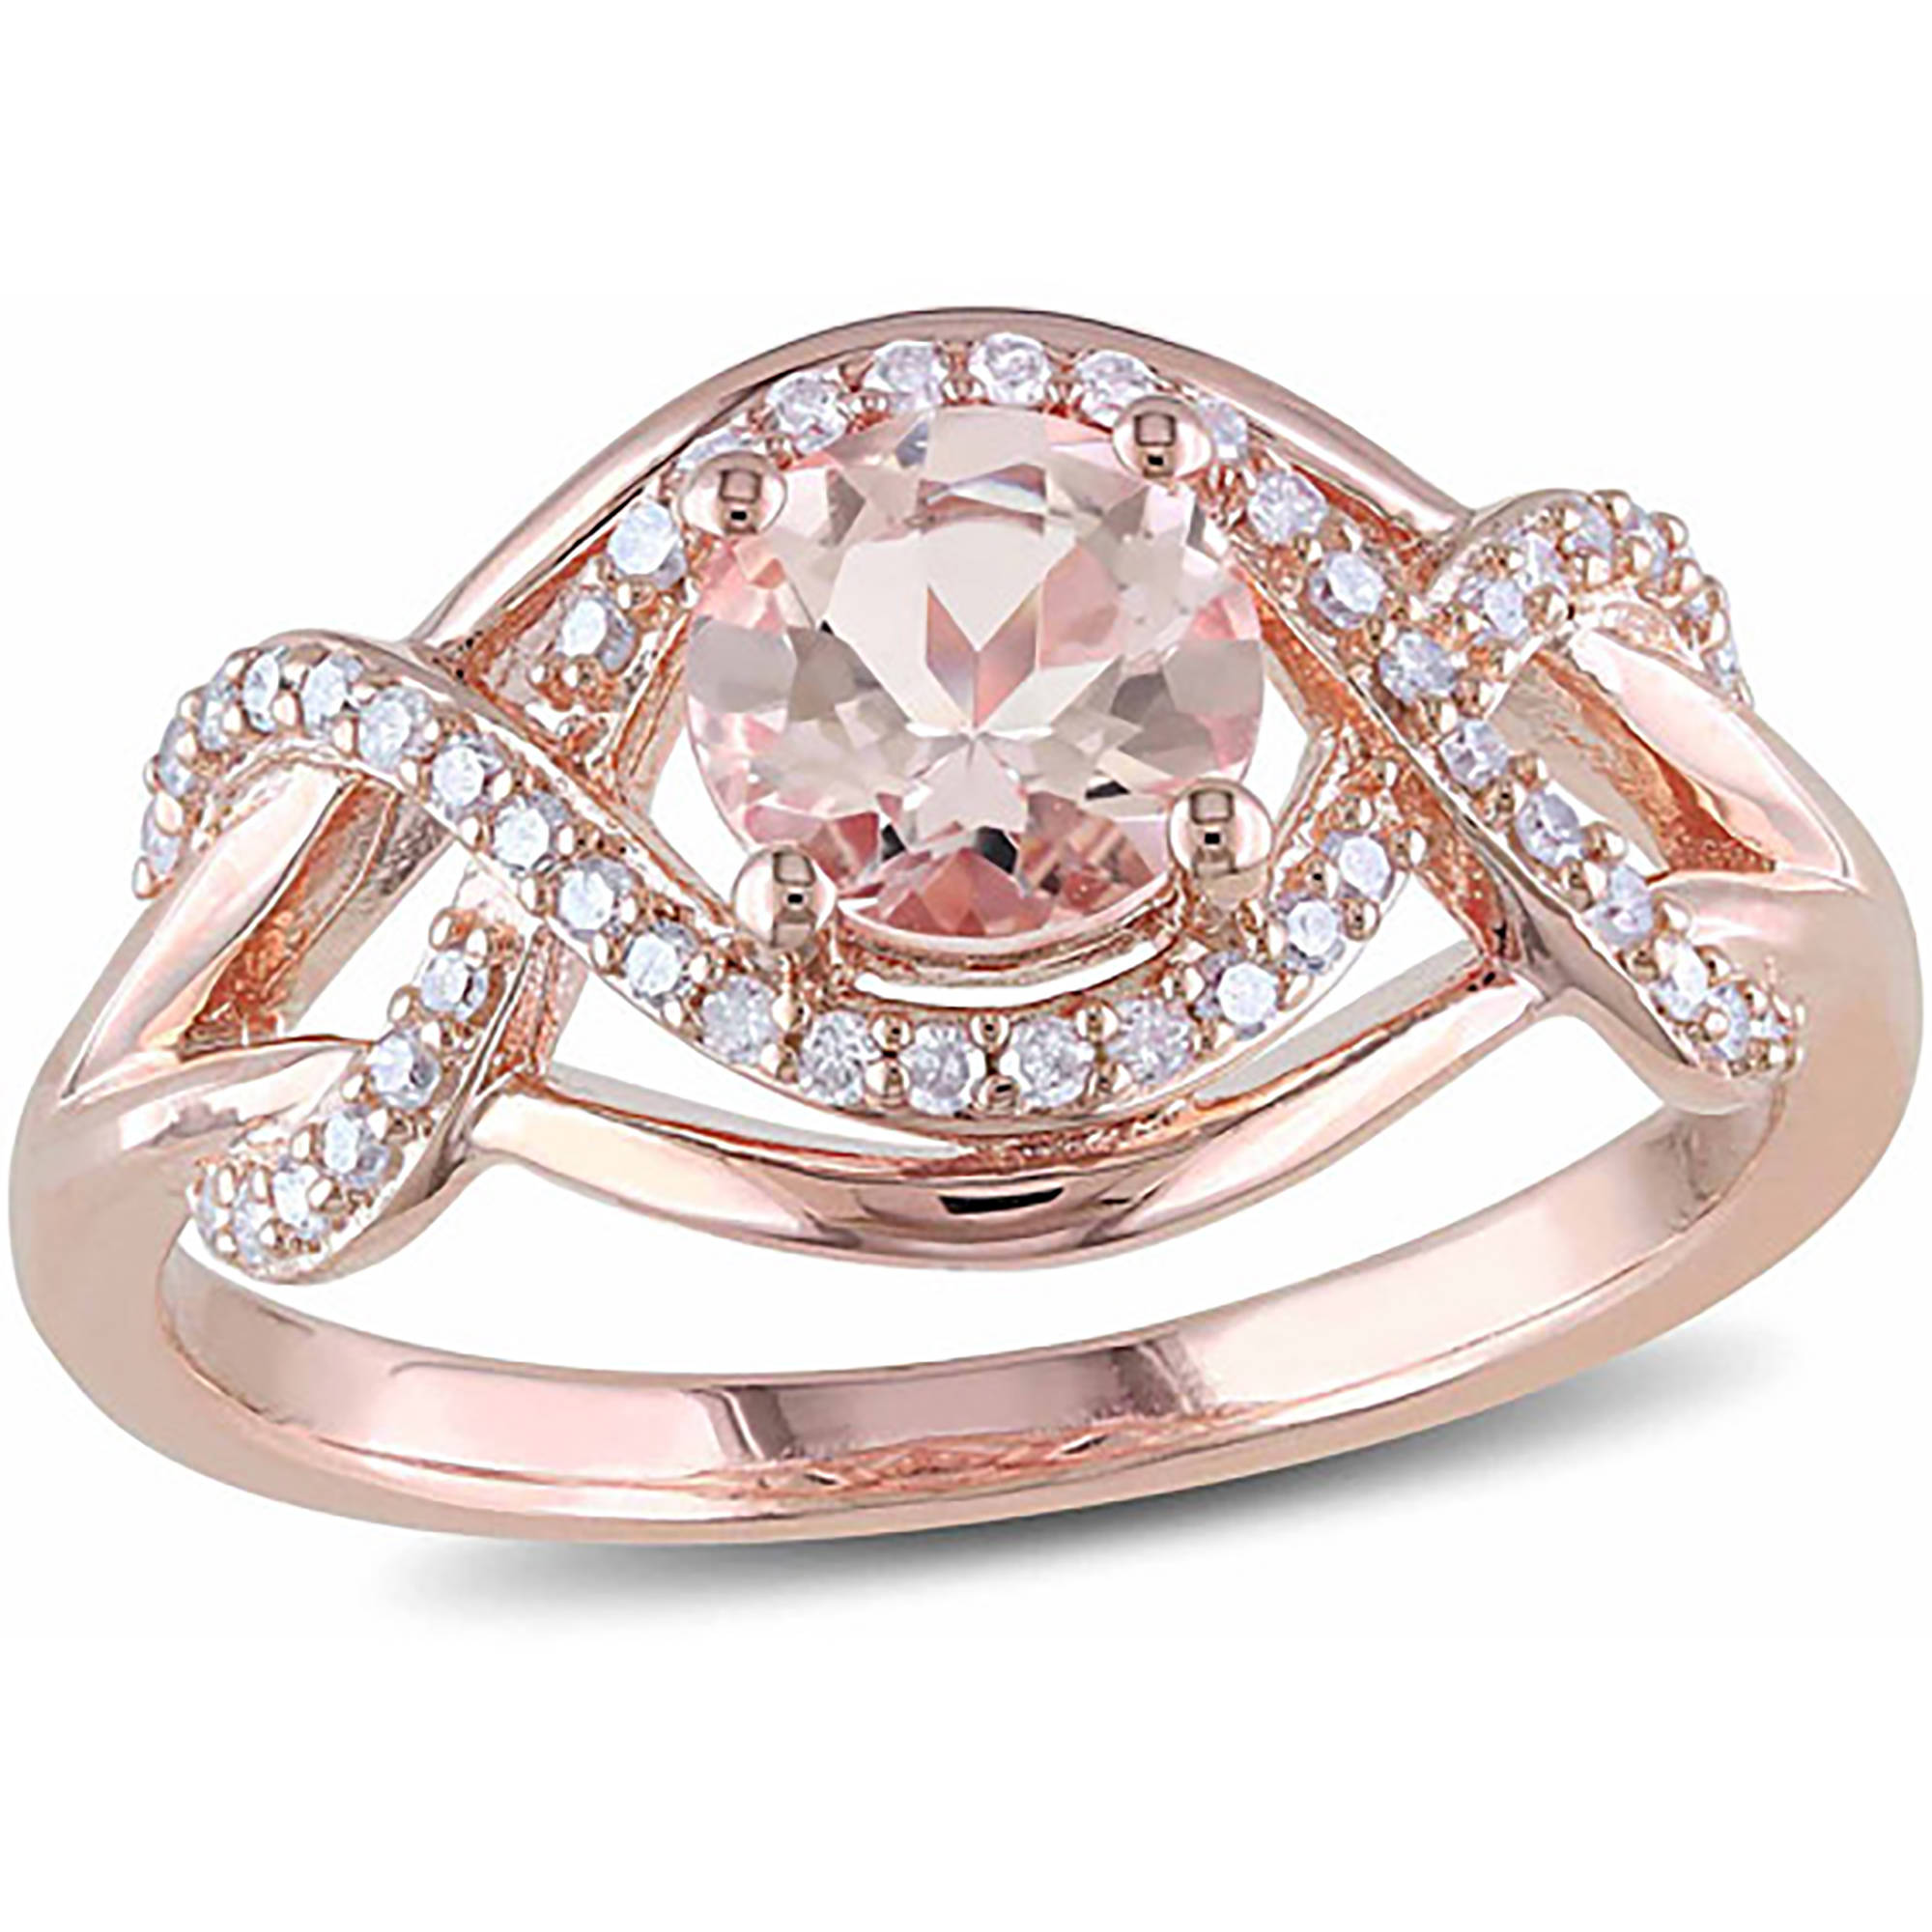 4 5 Carat T.G.W. Morganite and 1 5 Carat T.W. Diamond Pink Rhodium-Plated Sterling Silver Infinity Ring by Generic